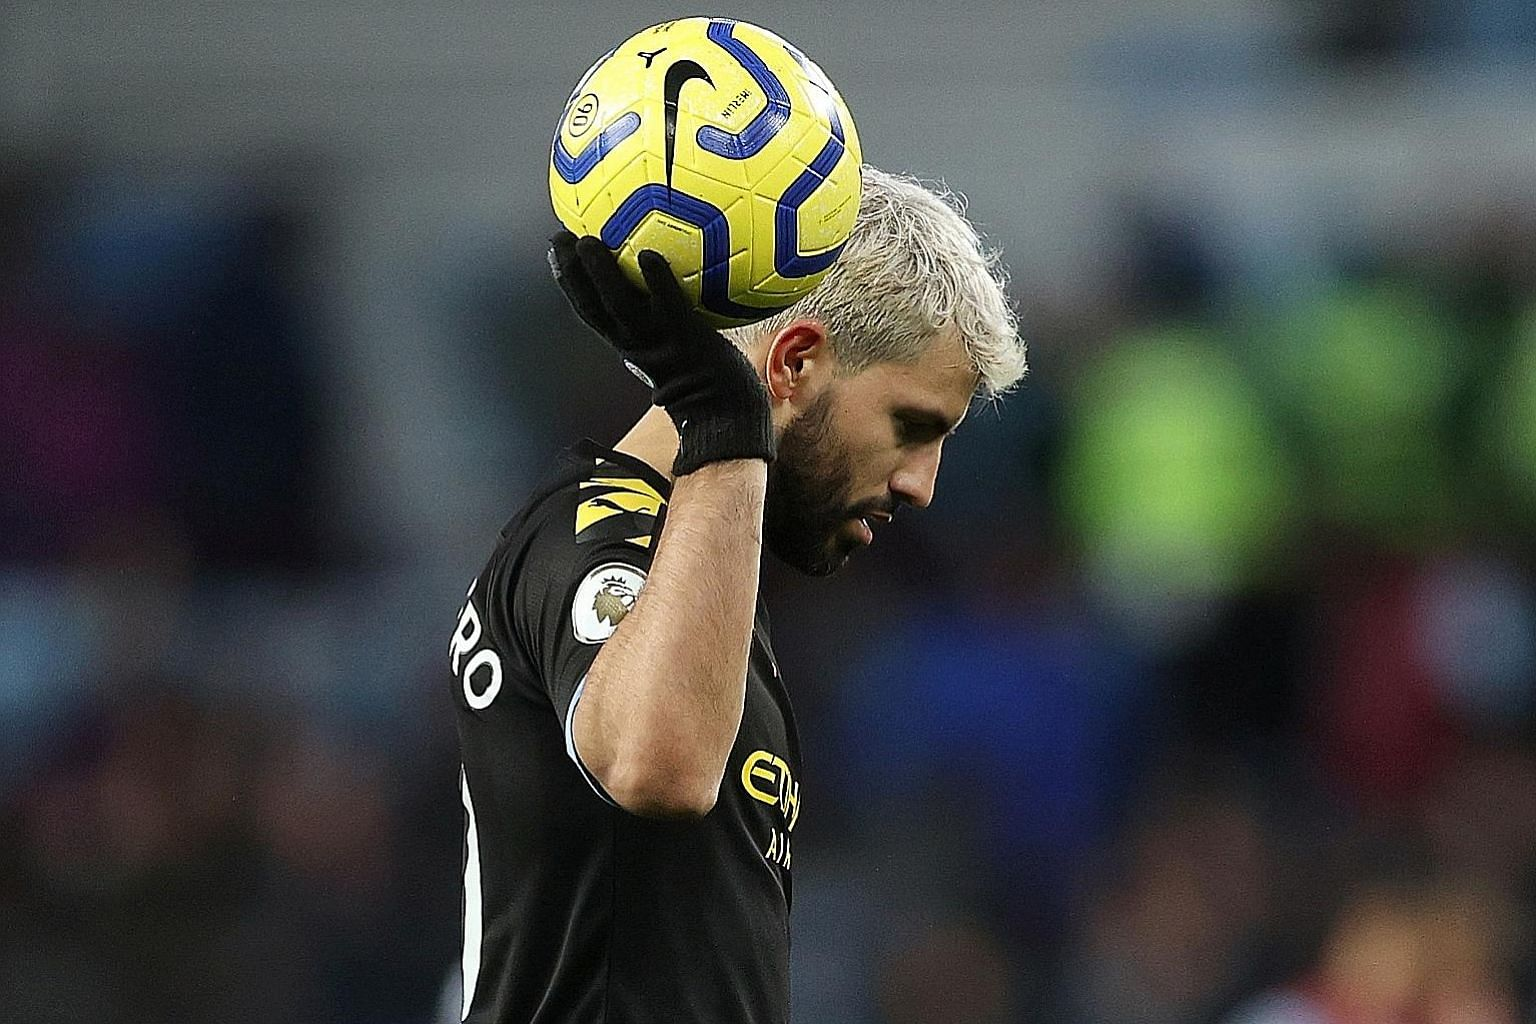 Manchester City striker Sergio Aguero will be hoping to add to his tally of 177 Premier League goals when the champions host Crystal Palace today. He is tied for fourth on the all-time scoring chart with Frank Lampard.